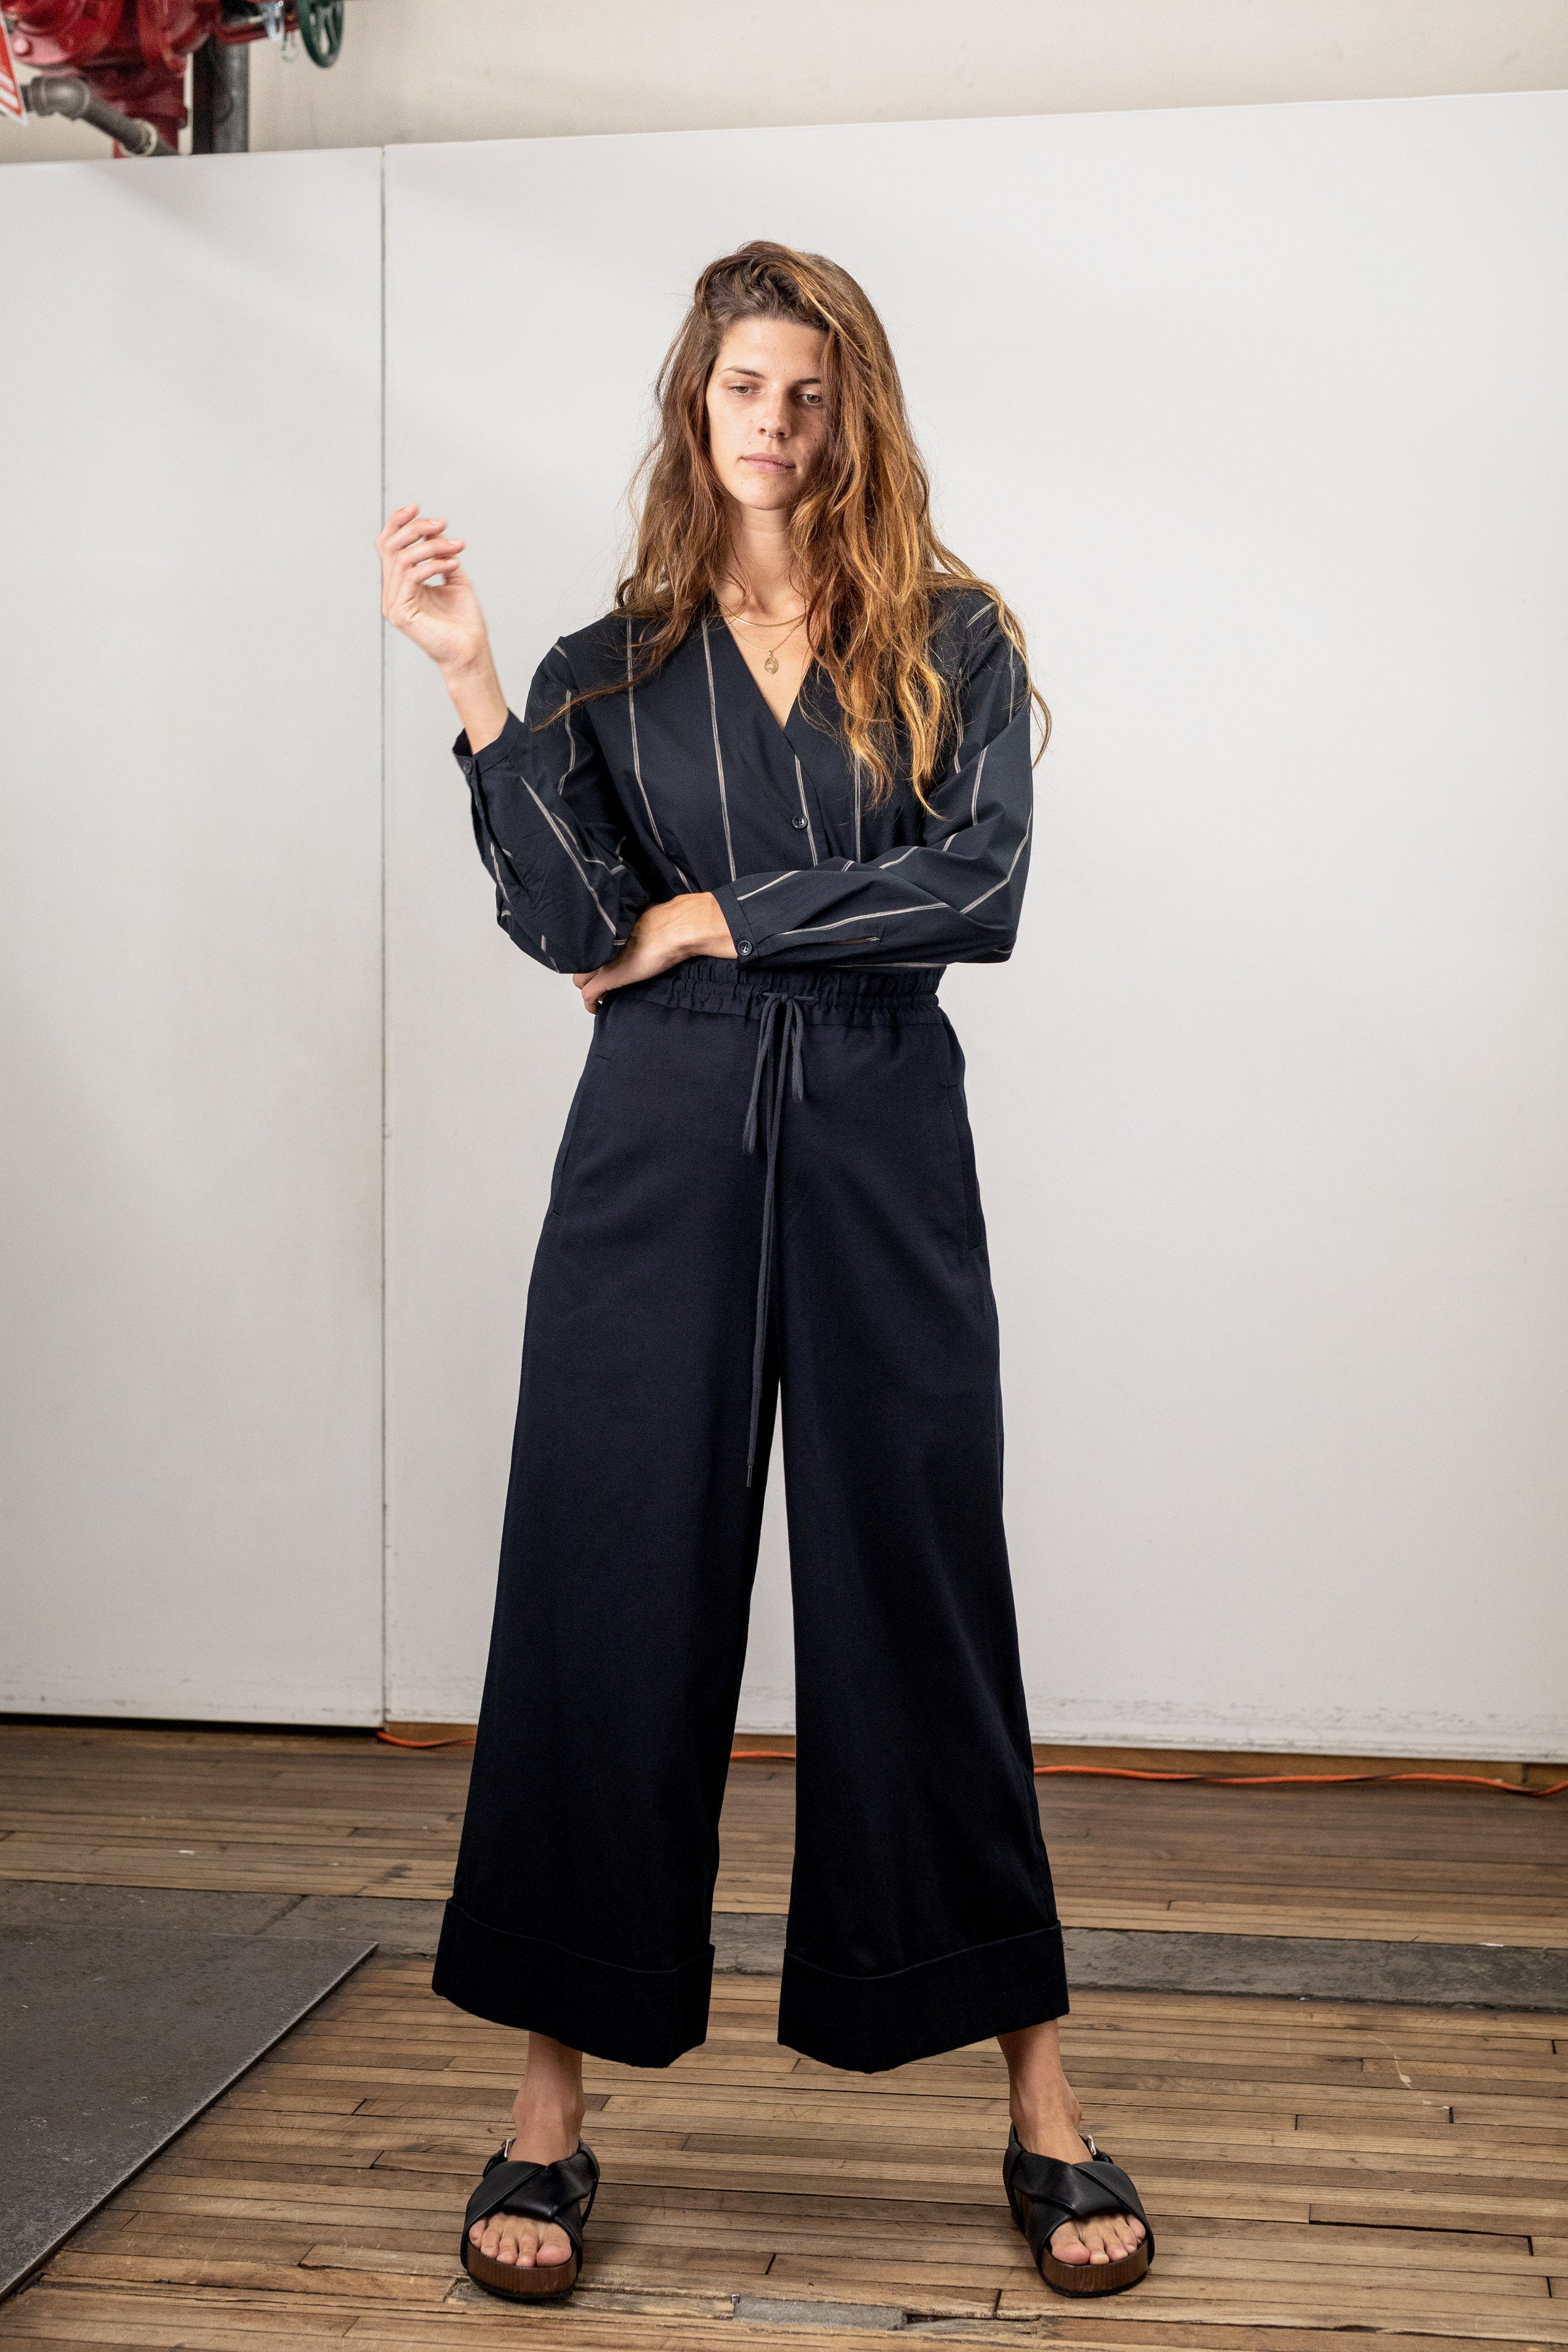 roucha-2019-lookbook-Final-5000px-13.jpg